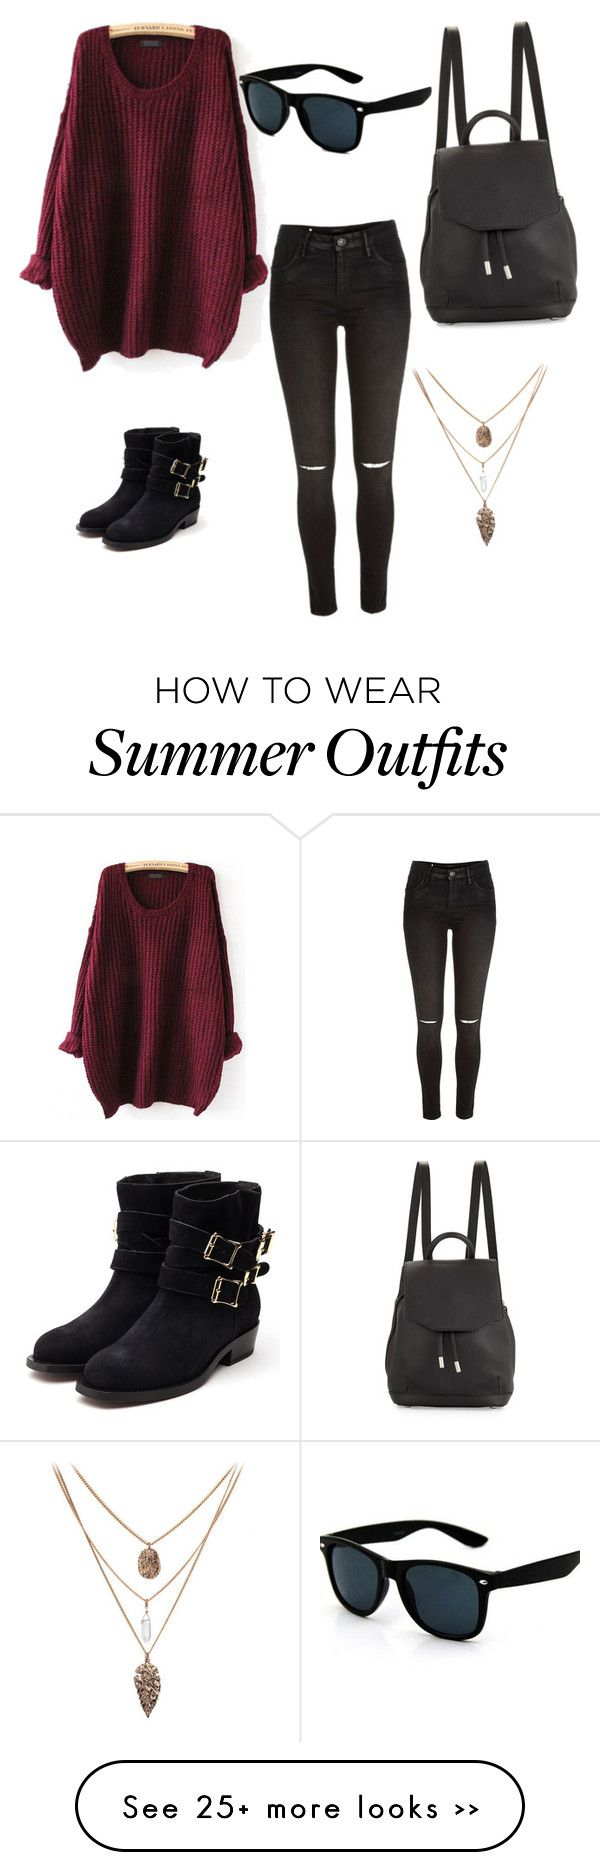 """""""Fall love"""" by alexisloya on Polyvore featuring River Island, Rupert Sanderson and rag & bone"""